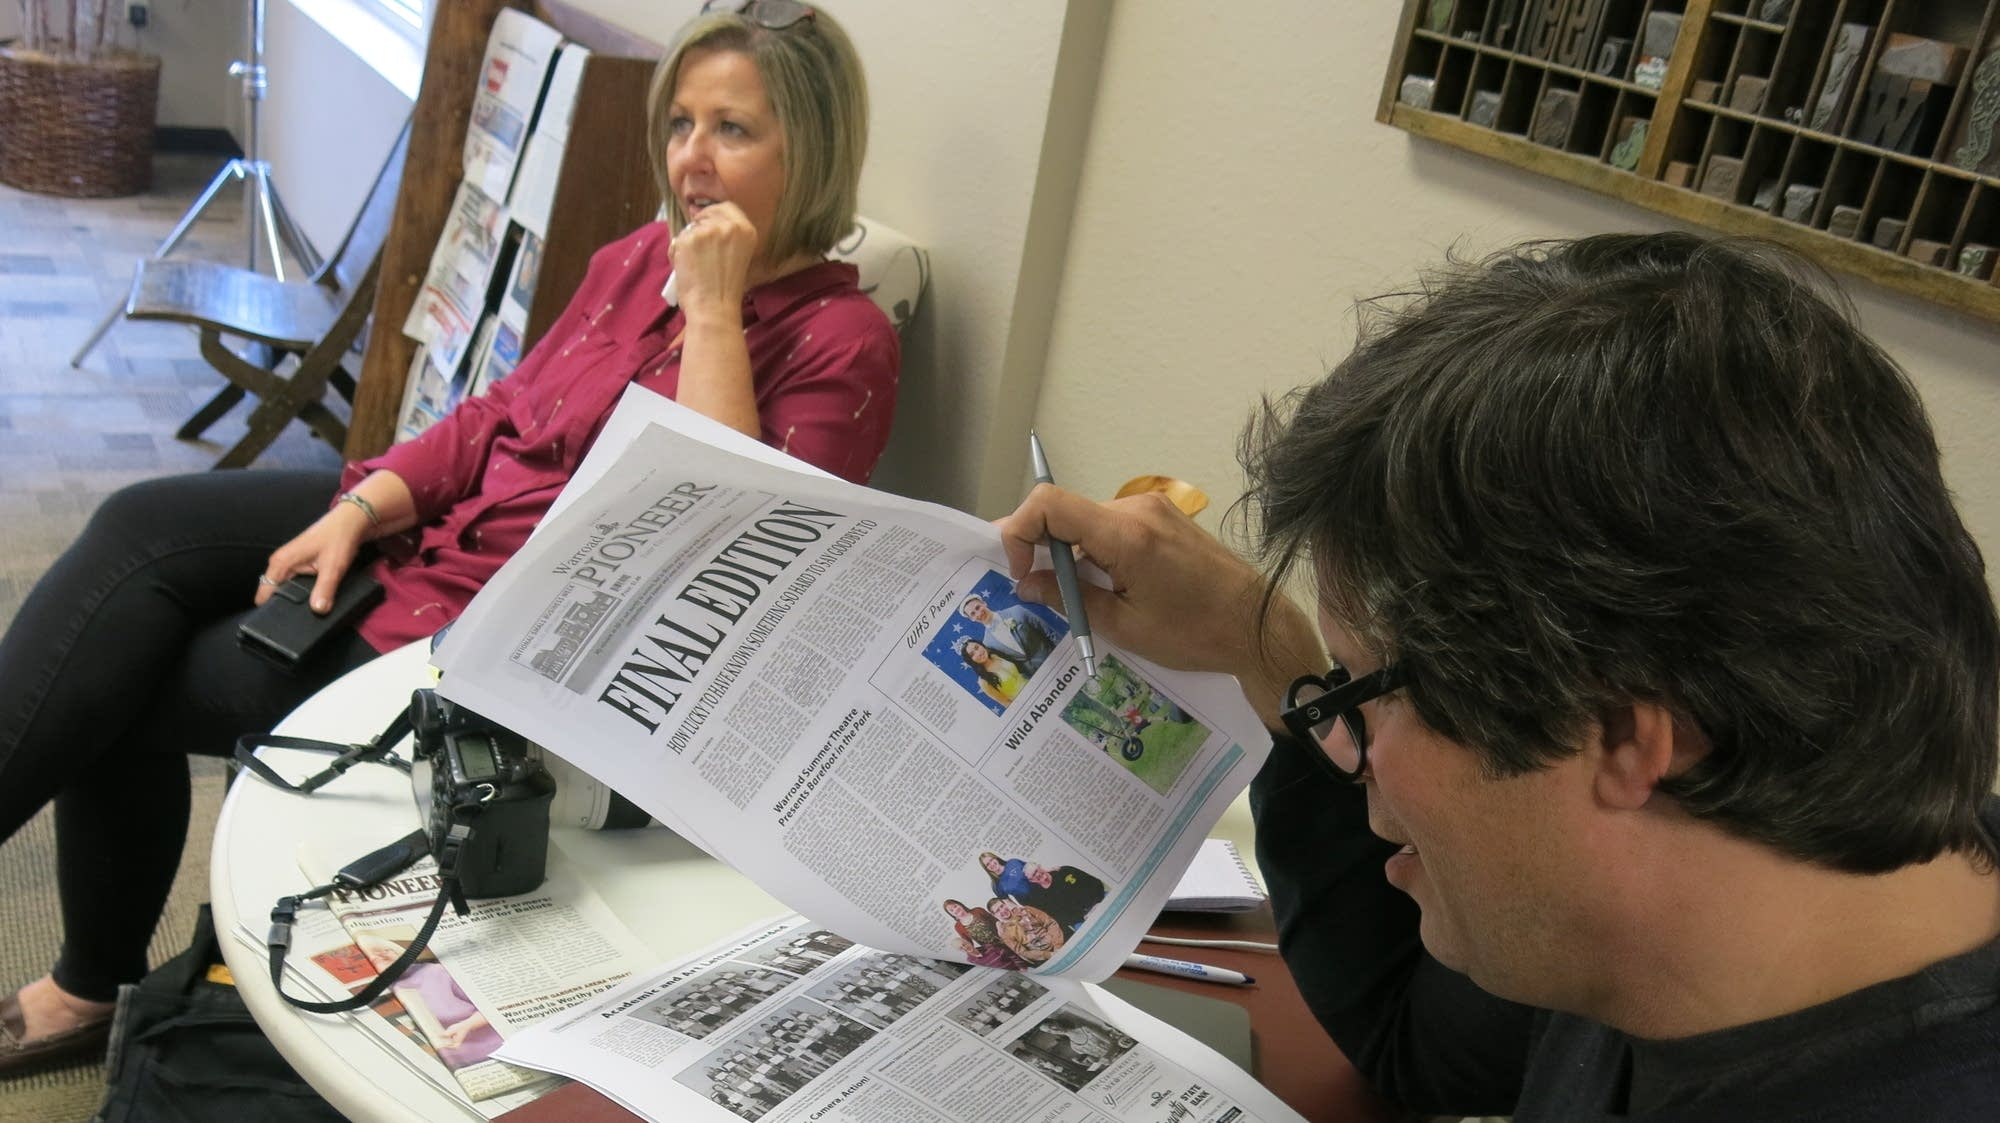 NYT writer Fausset reads a copy of the Warroad Pioneer's final edition.